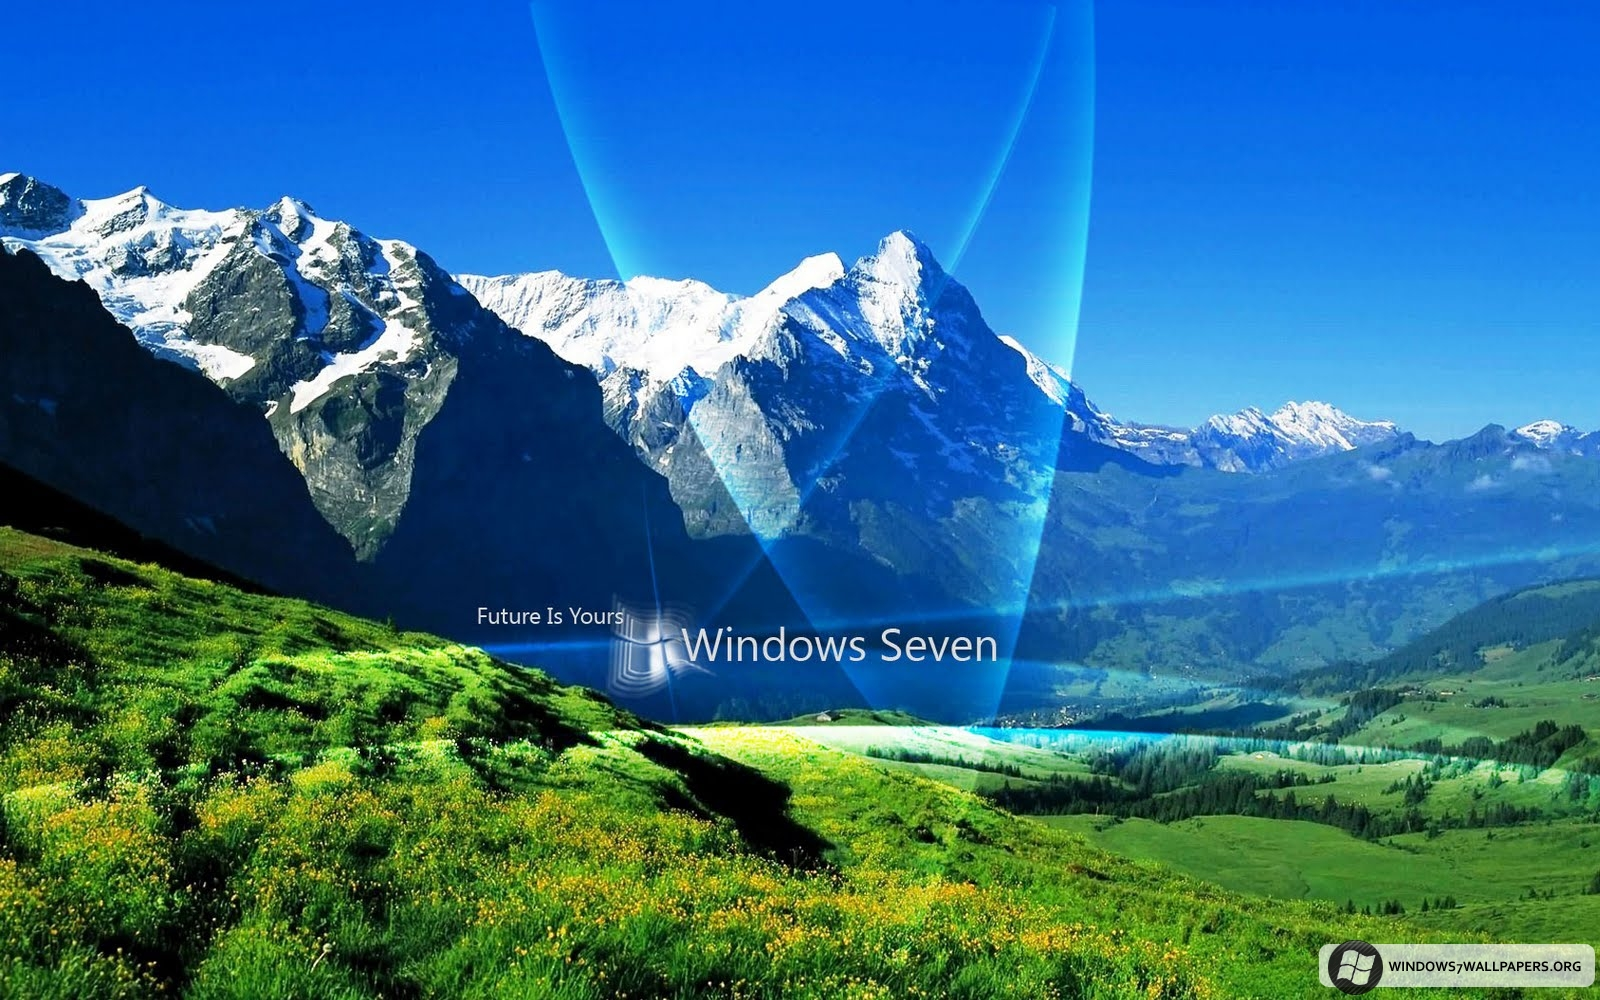 Glass Cup Nature Widescreen, Wallpaper, Nature, Widescreen, Nature Wallpaper Hd Widescreen